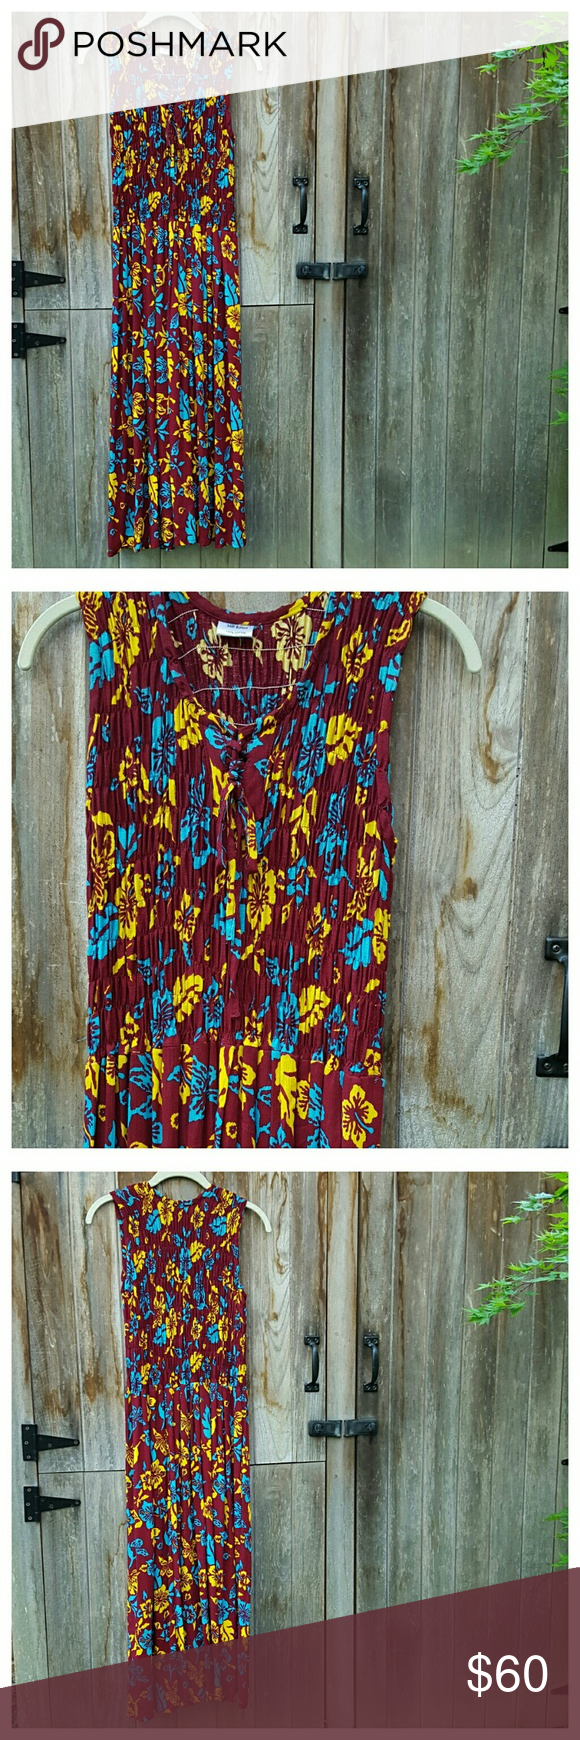 """Tropical Print Smocked Maxi Dress Bright, breezy dark red maxi dress with blue and yellow tropical floral print. Sleeveless with round neck. smocked bodice and lace-up front. Pullover styling. No size tag but sold as size S. Length from back of neck 47"""" width at bust and waist 13"""" unstretched, stretches to 21.5"""". 100 % cotton. EUC. Dresses Maxi"""